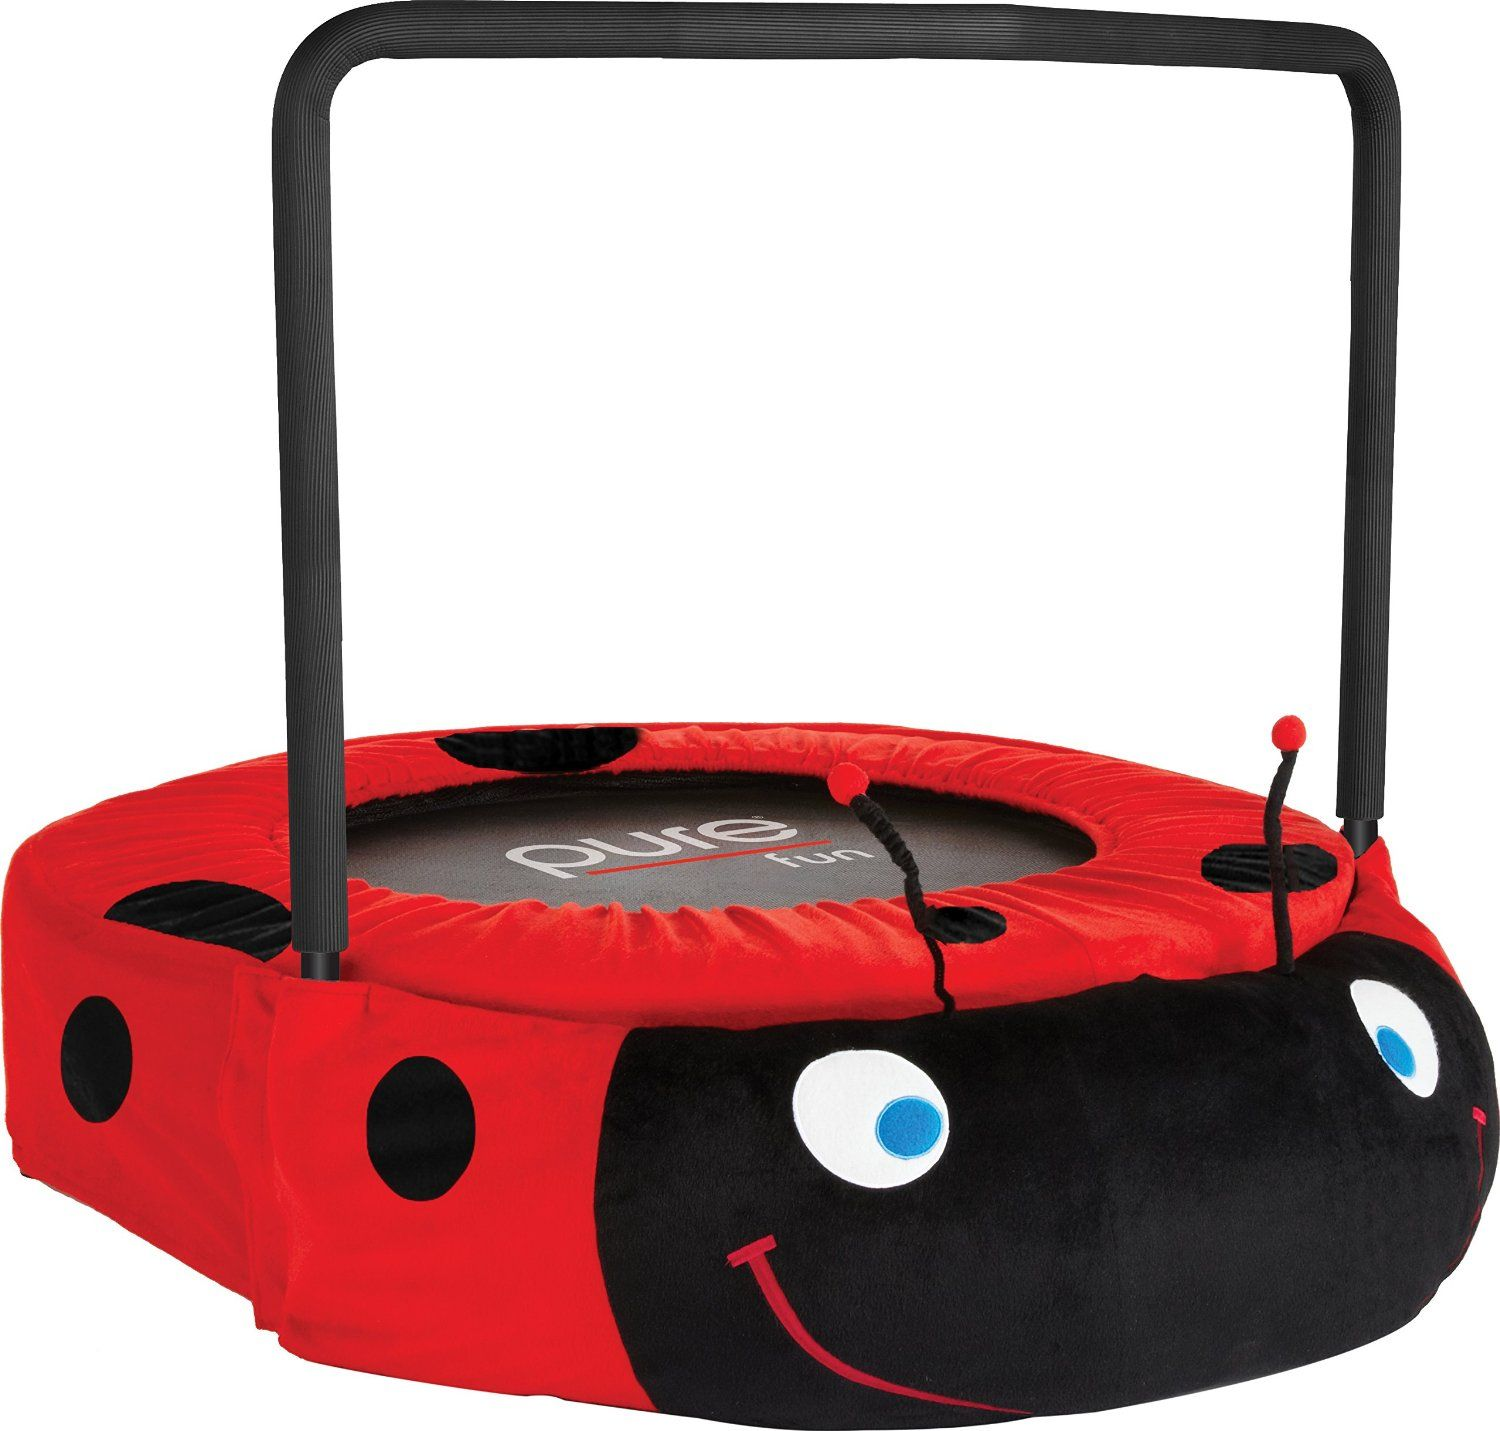 69428991a279 Pure Fun 36-inch Ladybug Jumper Trampoline - 60% OFF  blackfriday ...